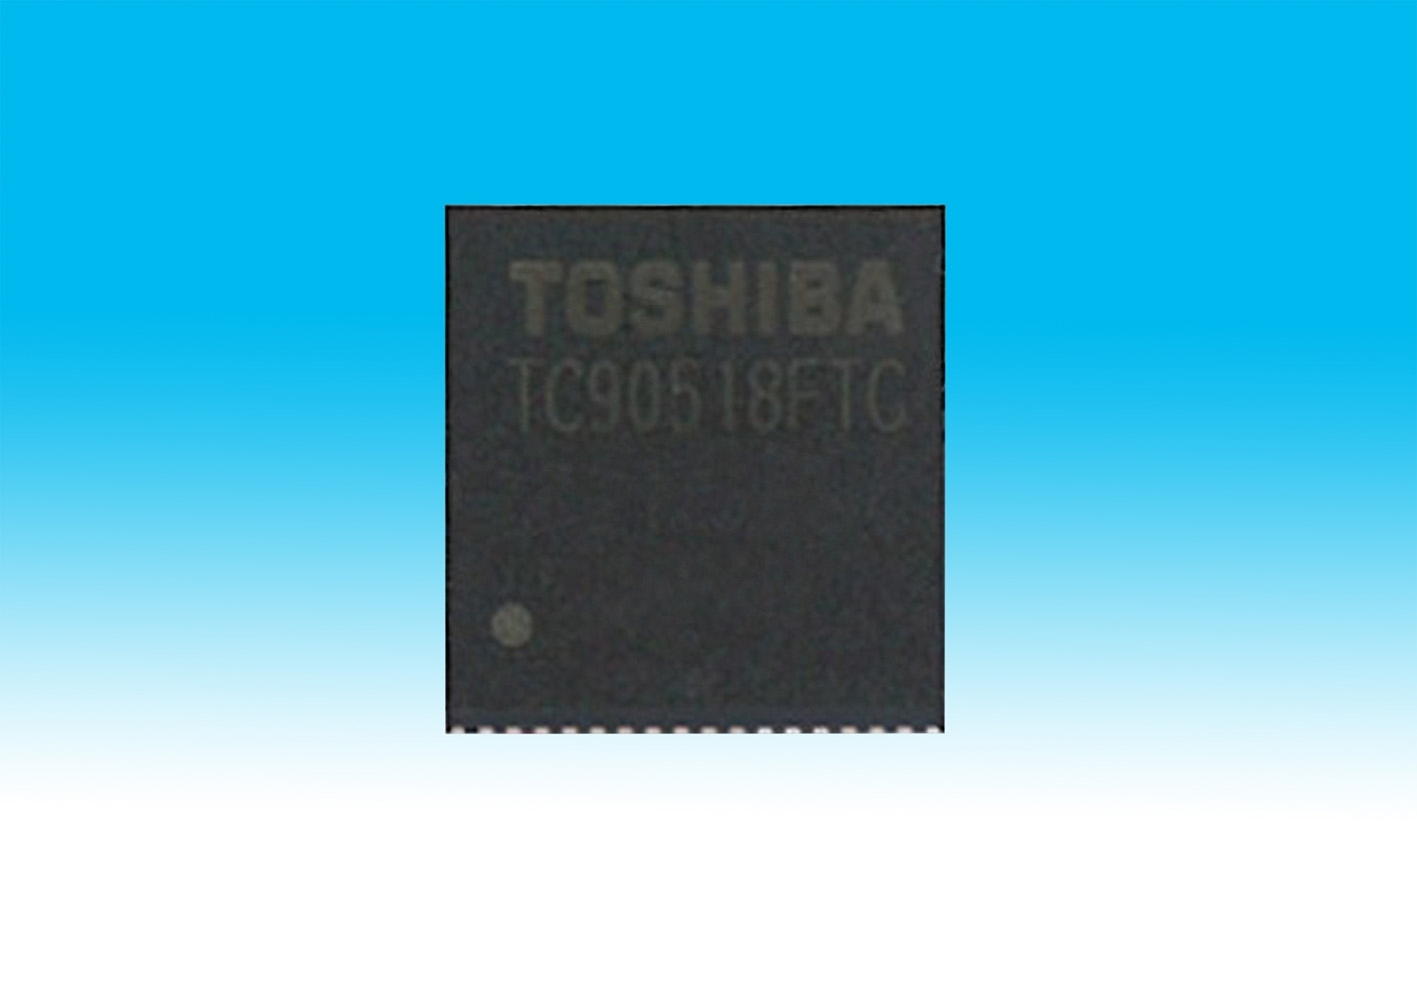 Toshiba Launches Demodulator IC for China Digital Terrestrial and ...